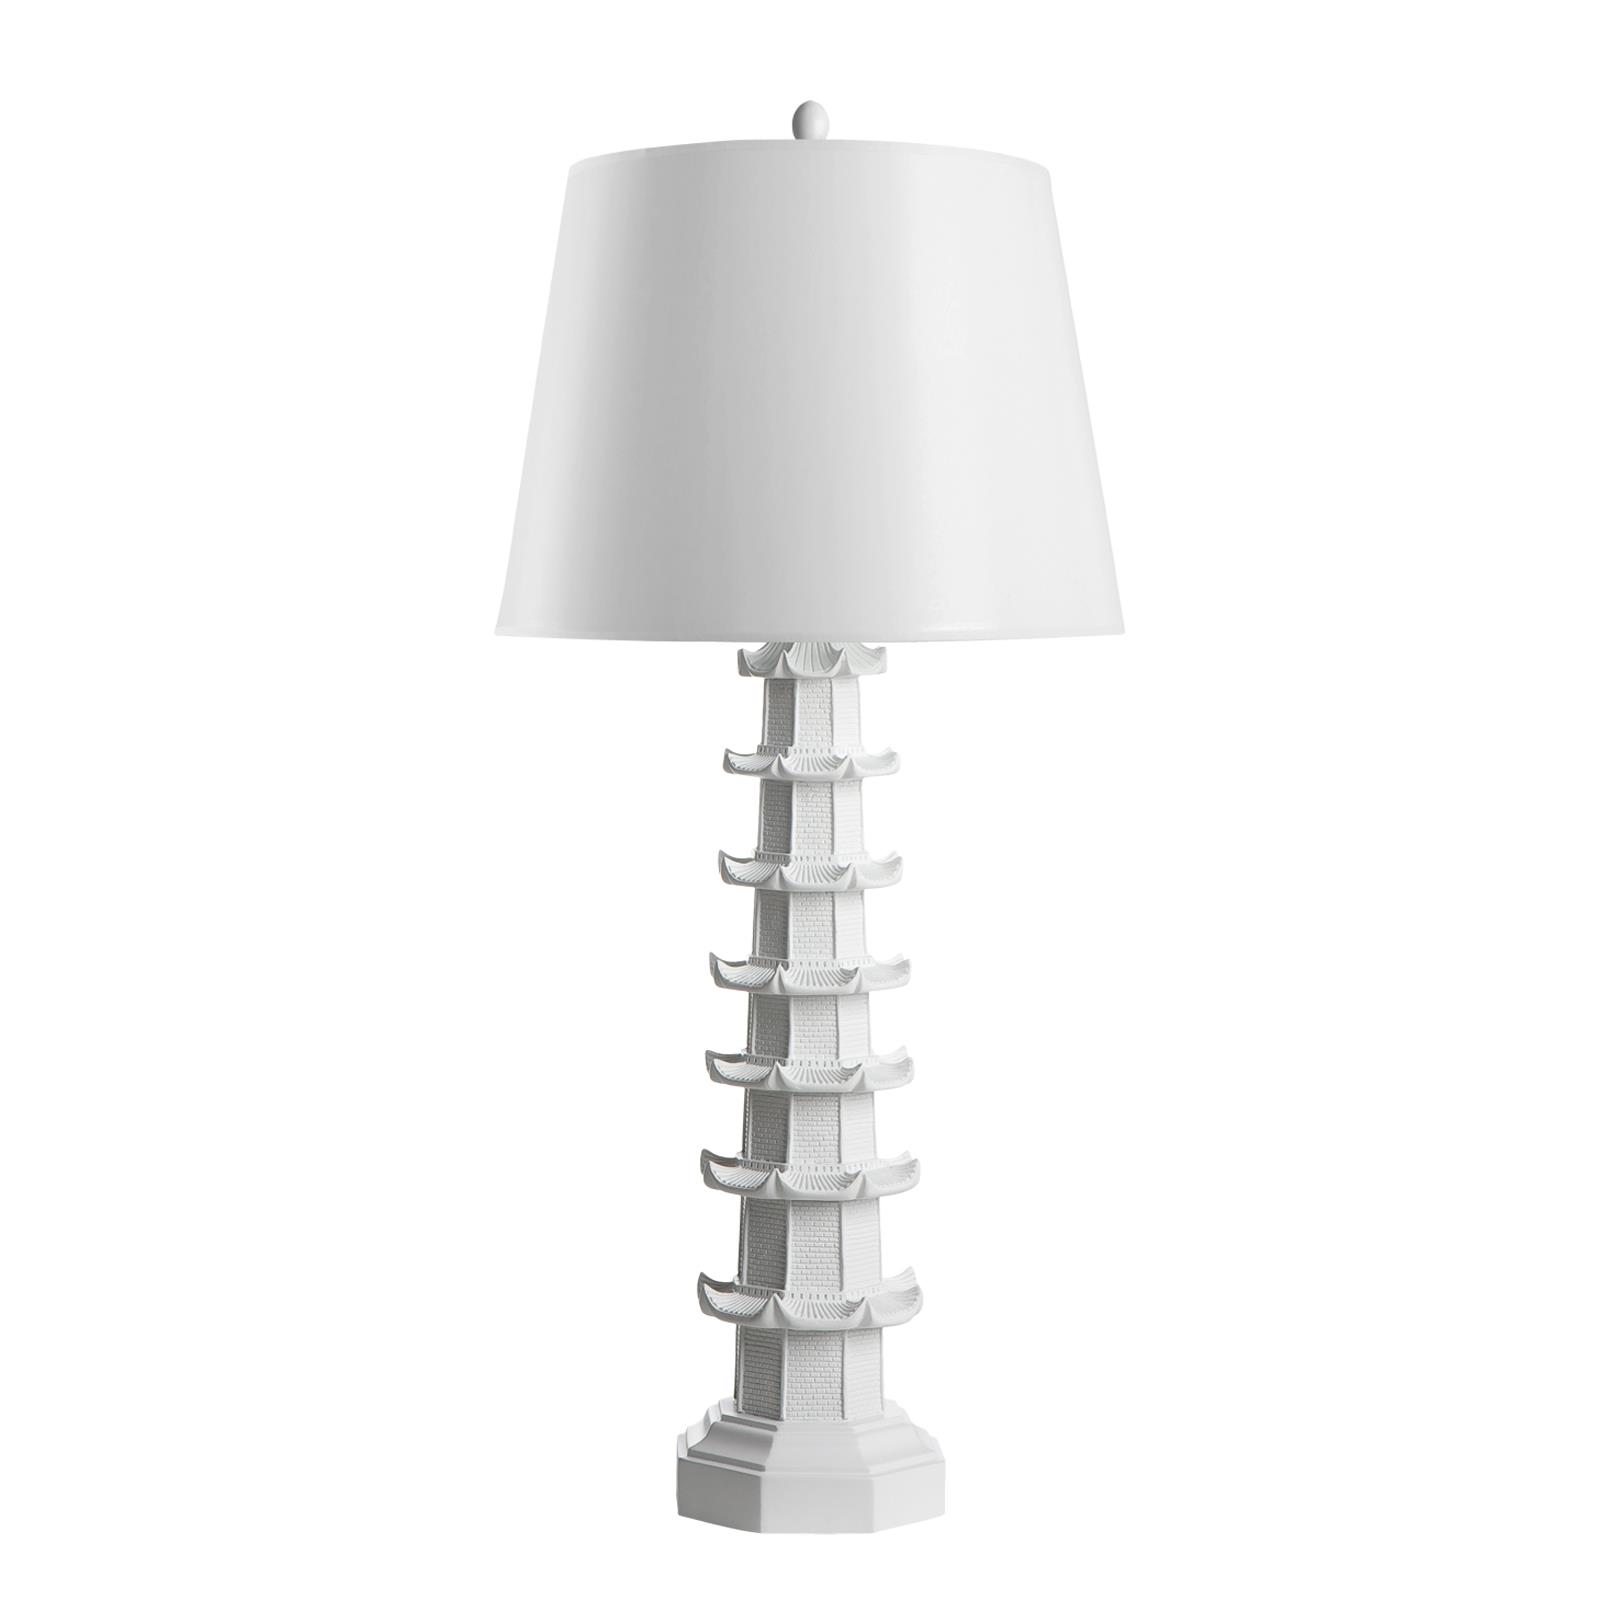 brighton lamp lamp only white bungalow 5 bungalow 5 white lacquered